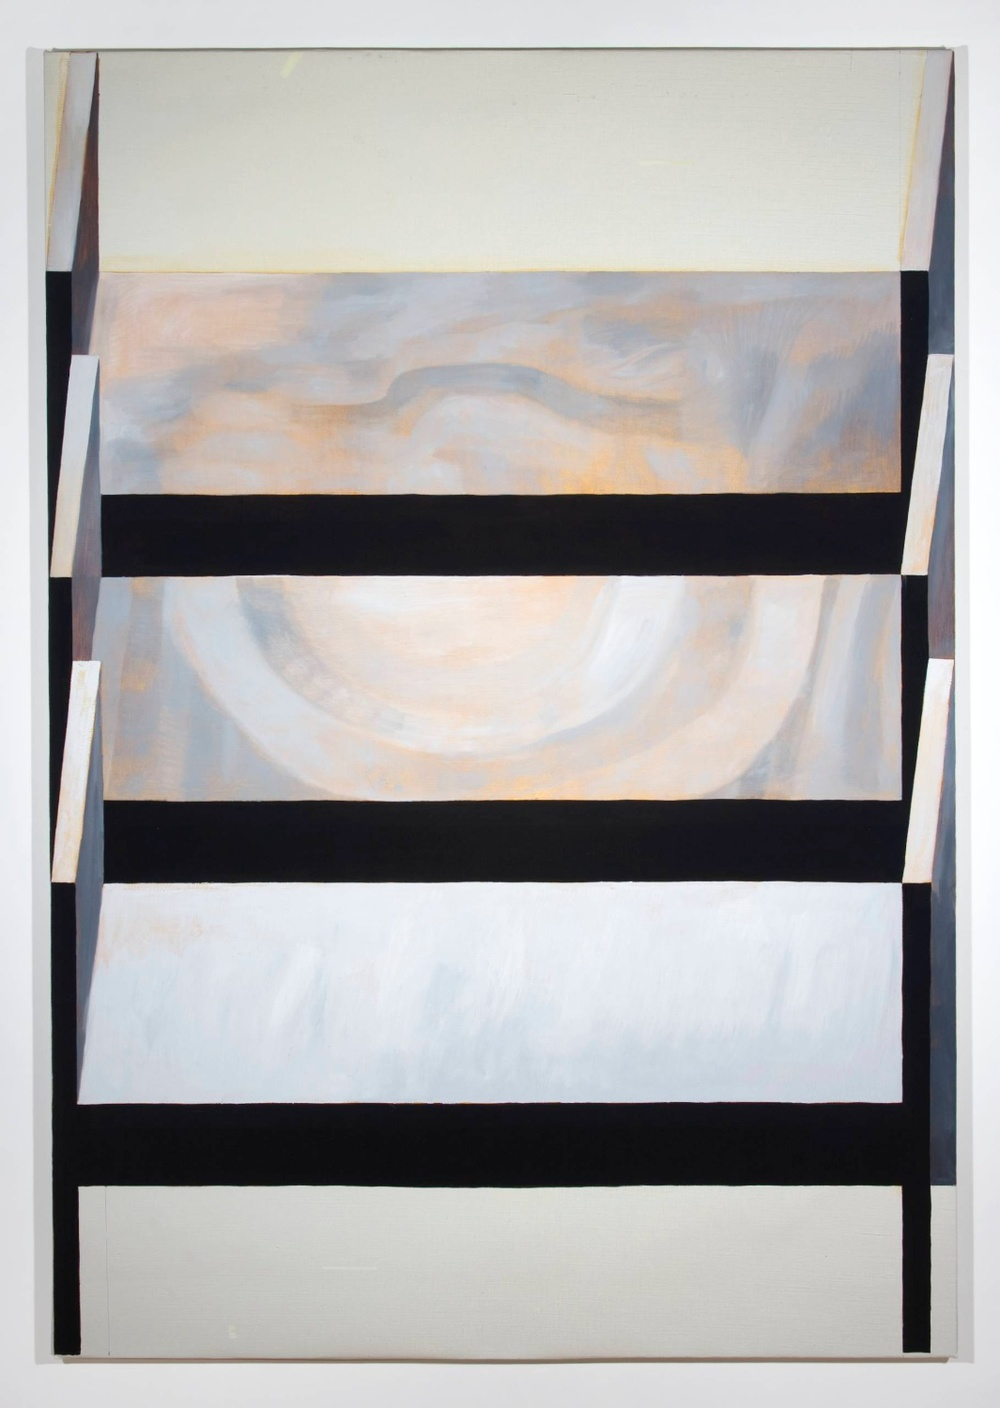 Jesse Chapman  The Beds  2008 Oil on linen 75h x 52w in